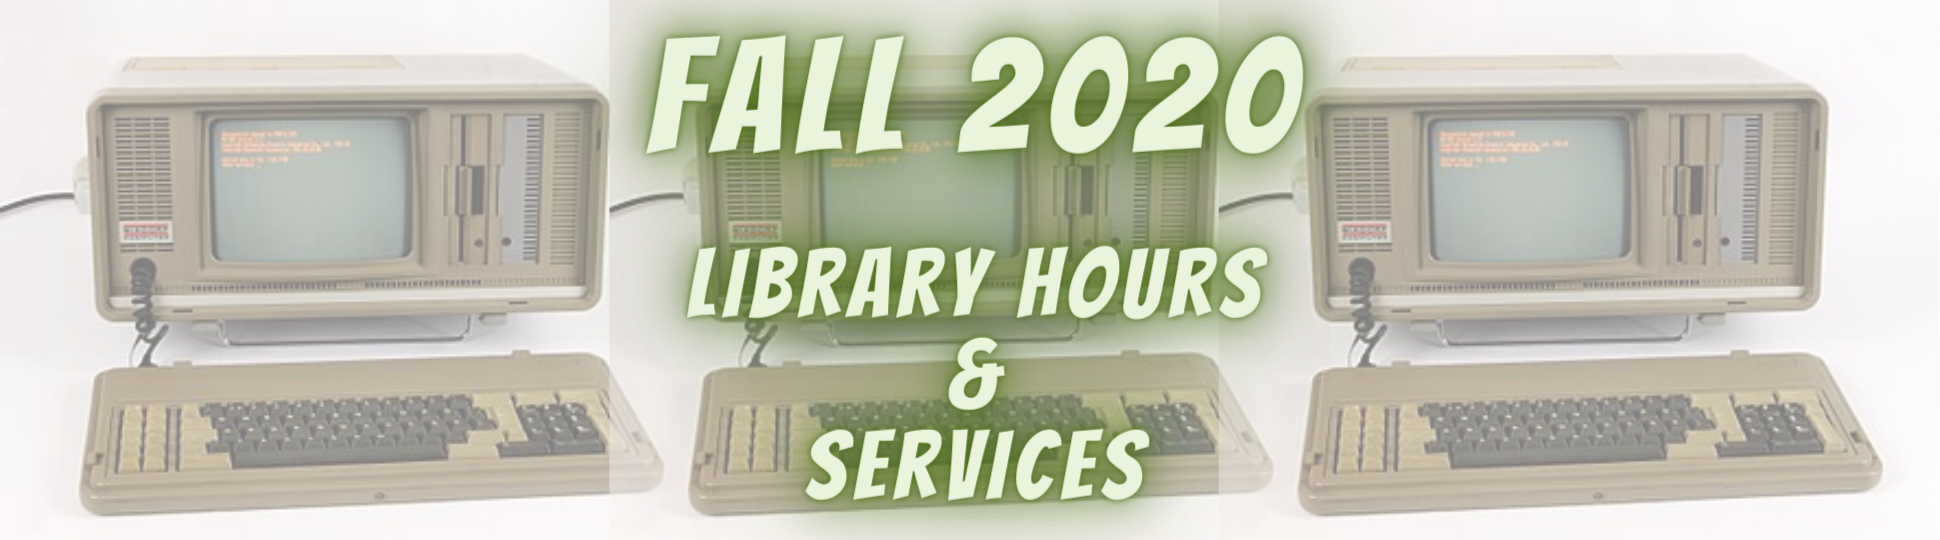 Banner reading Fall 2020 Library Hours & Services